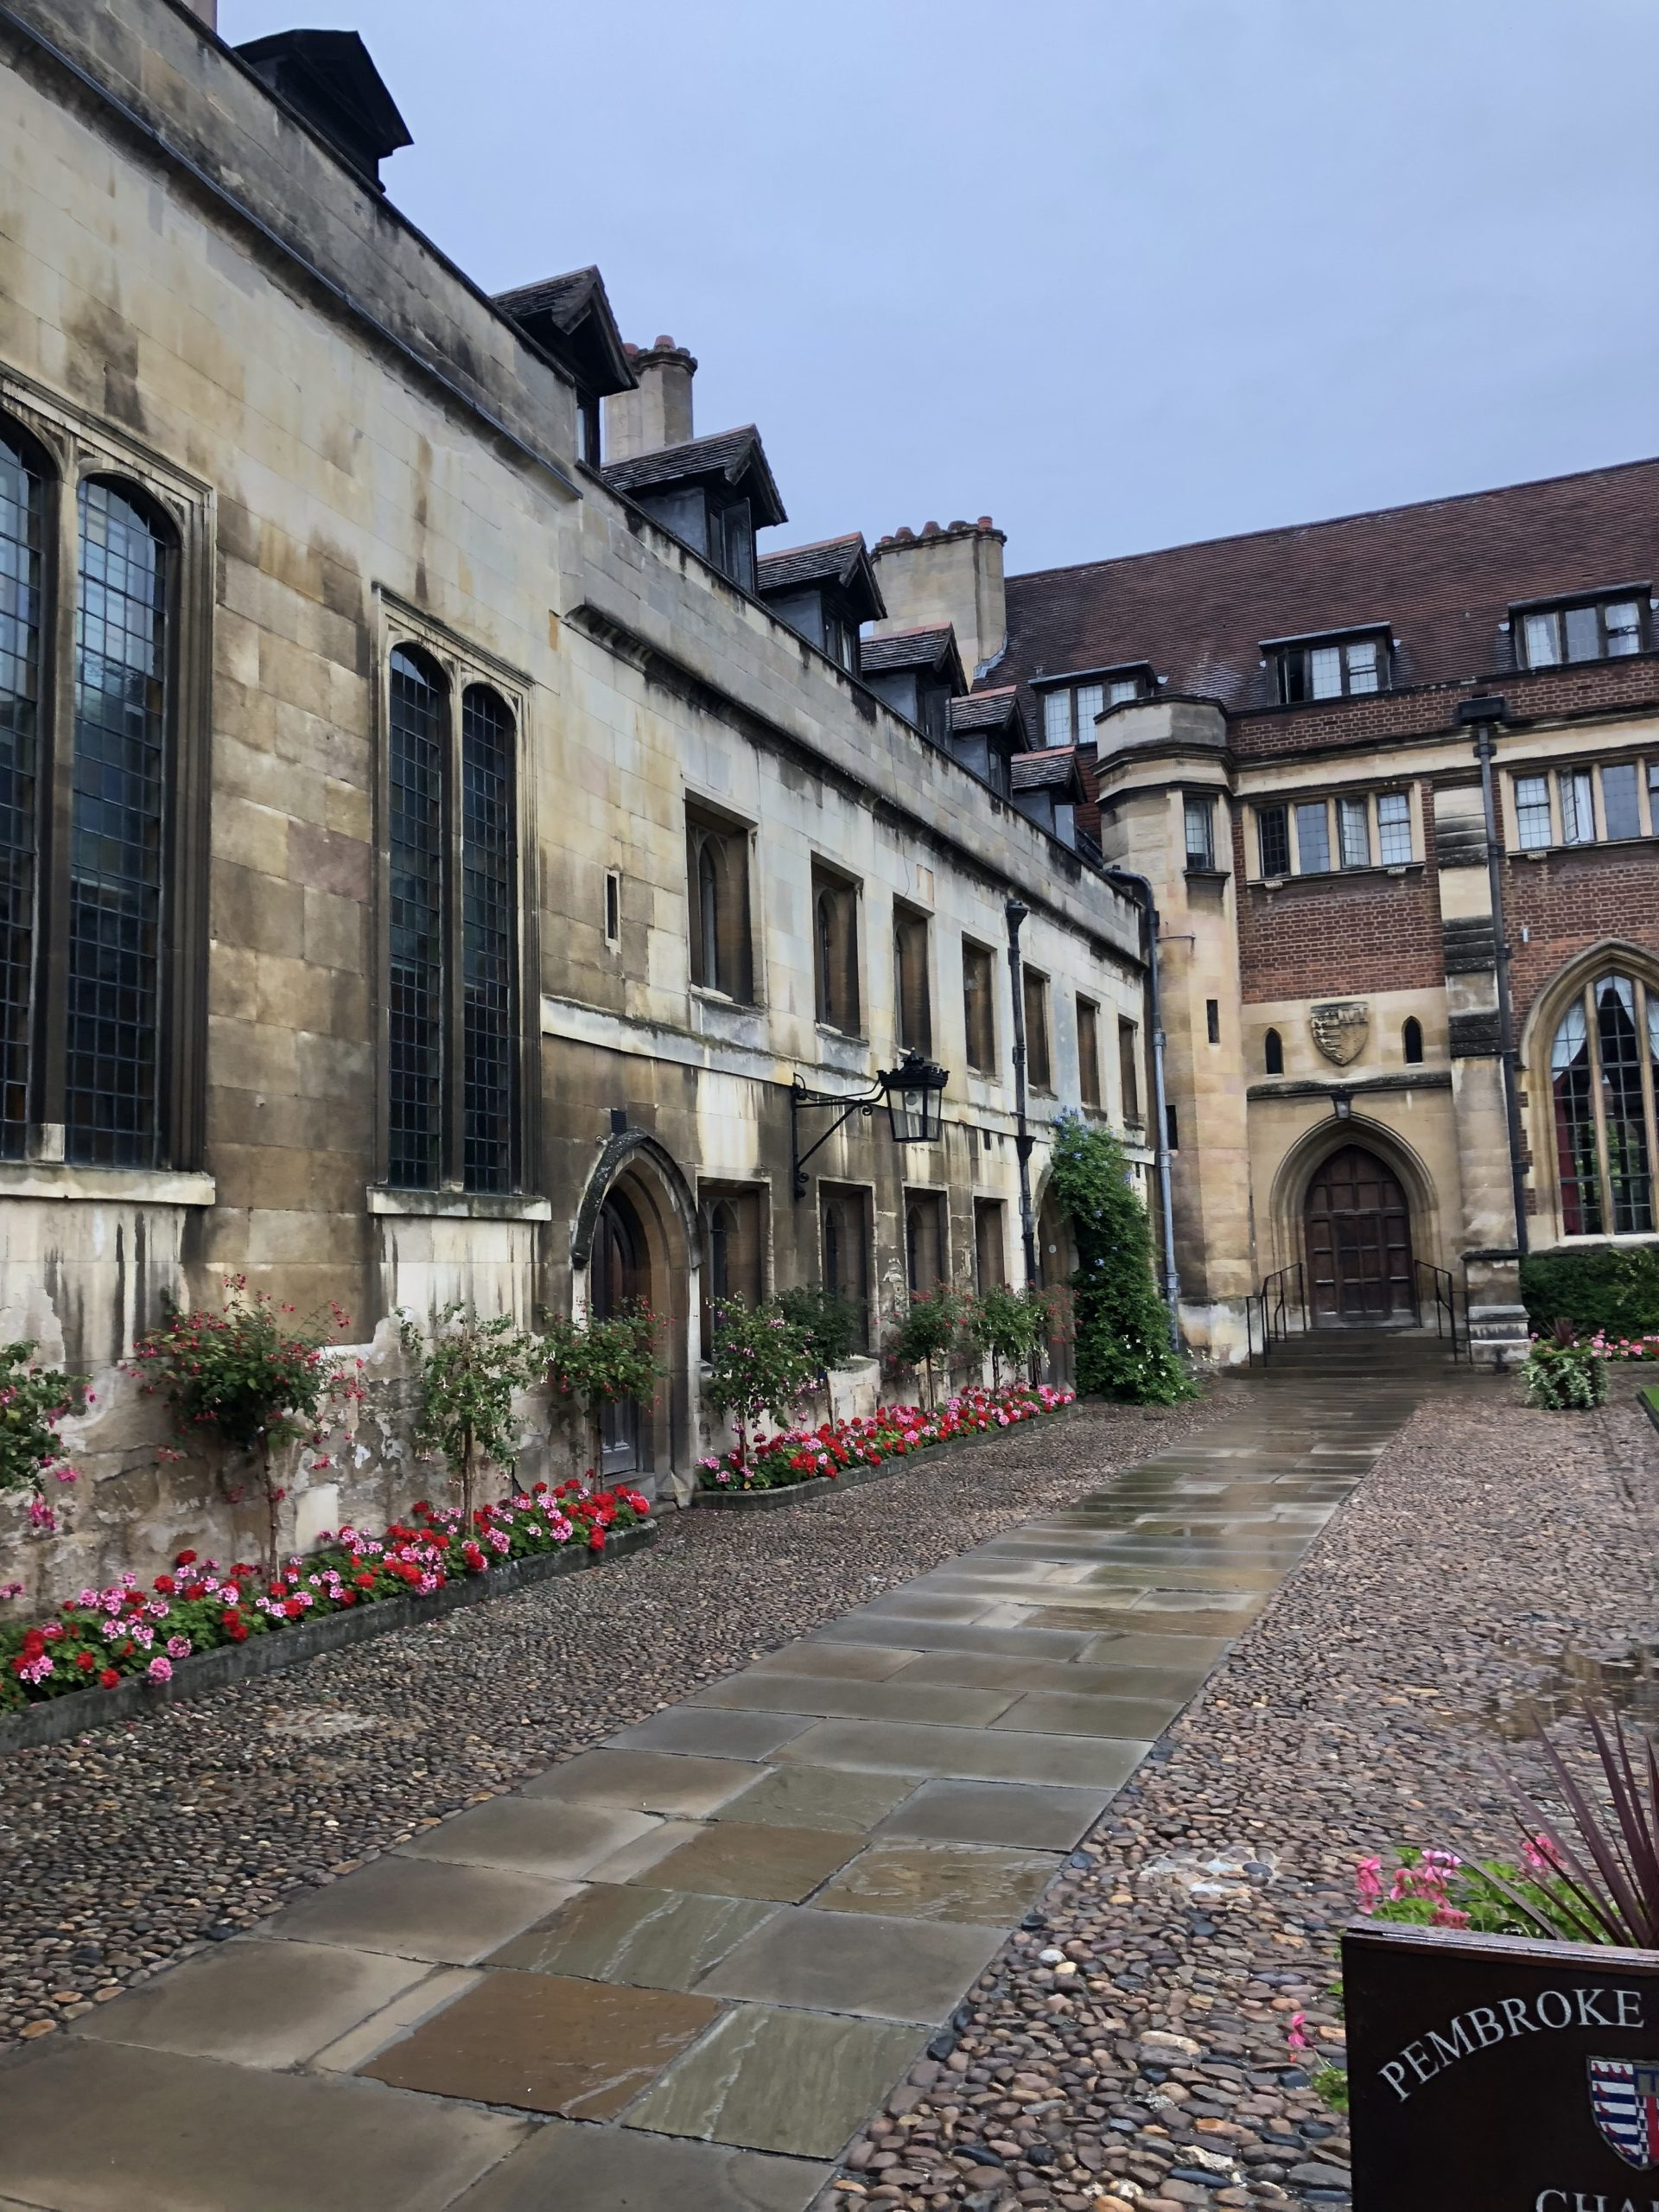 One magical day in Cambridge